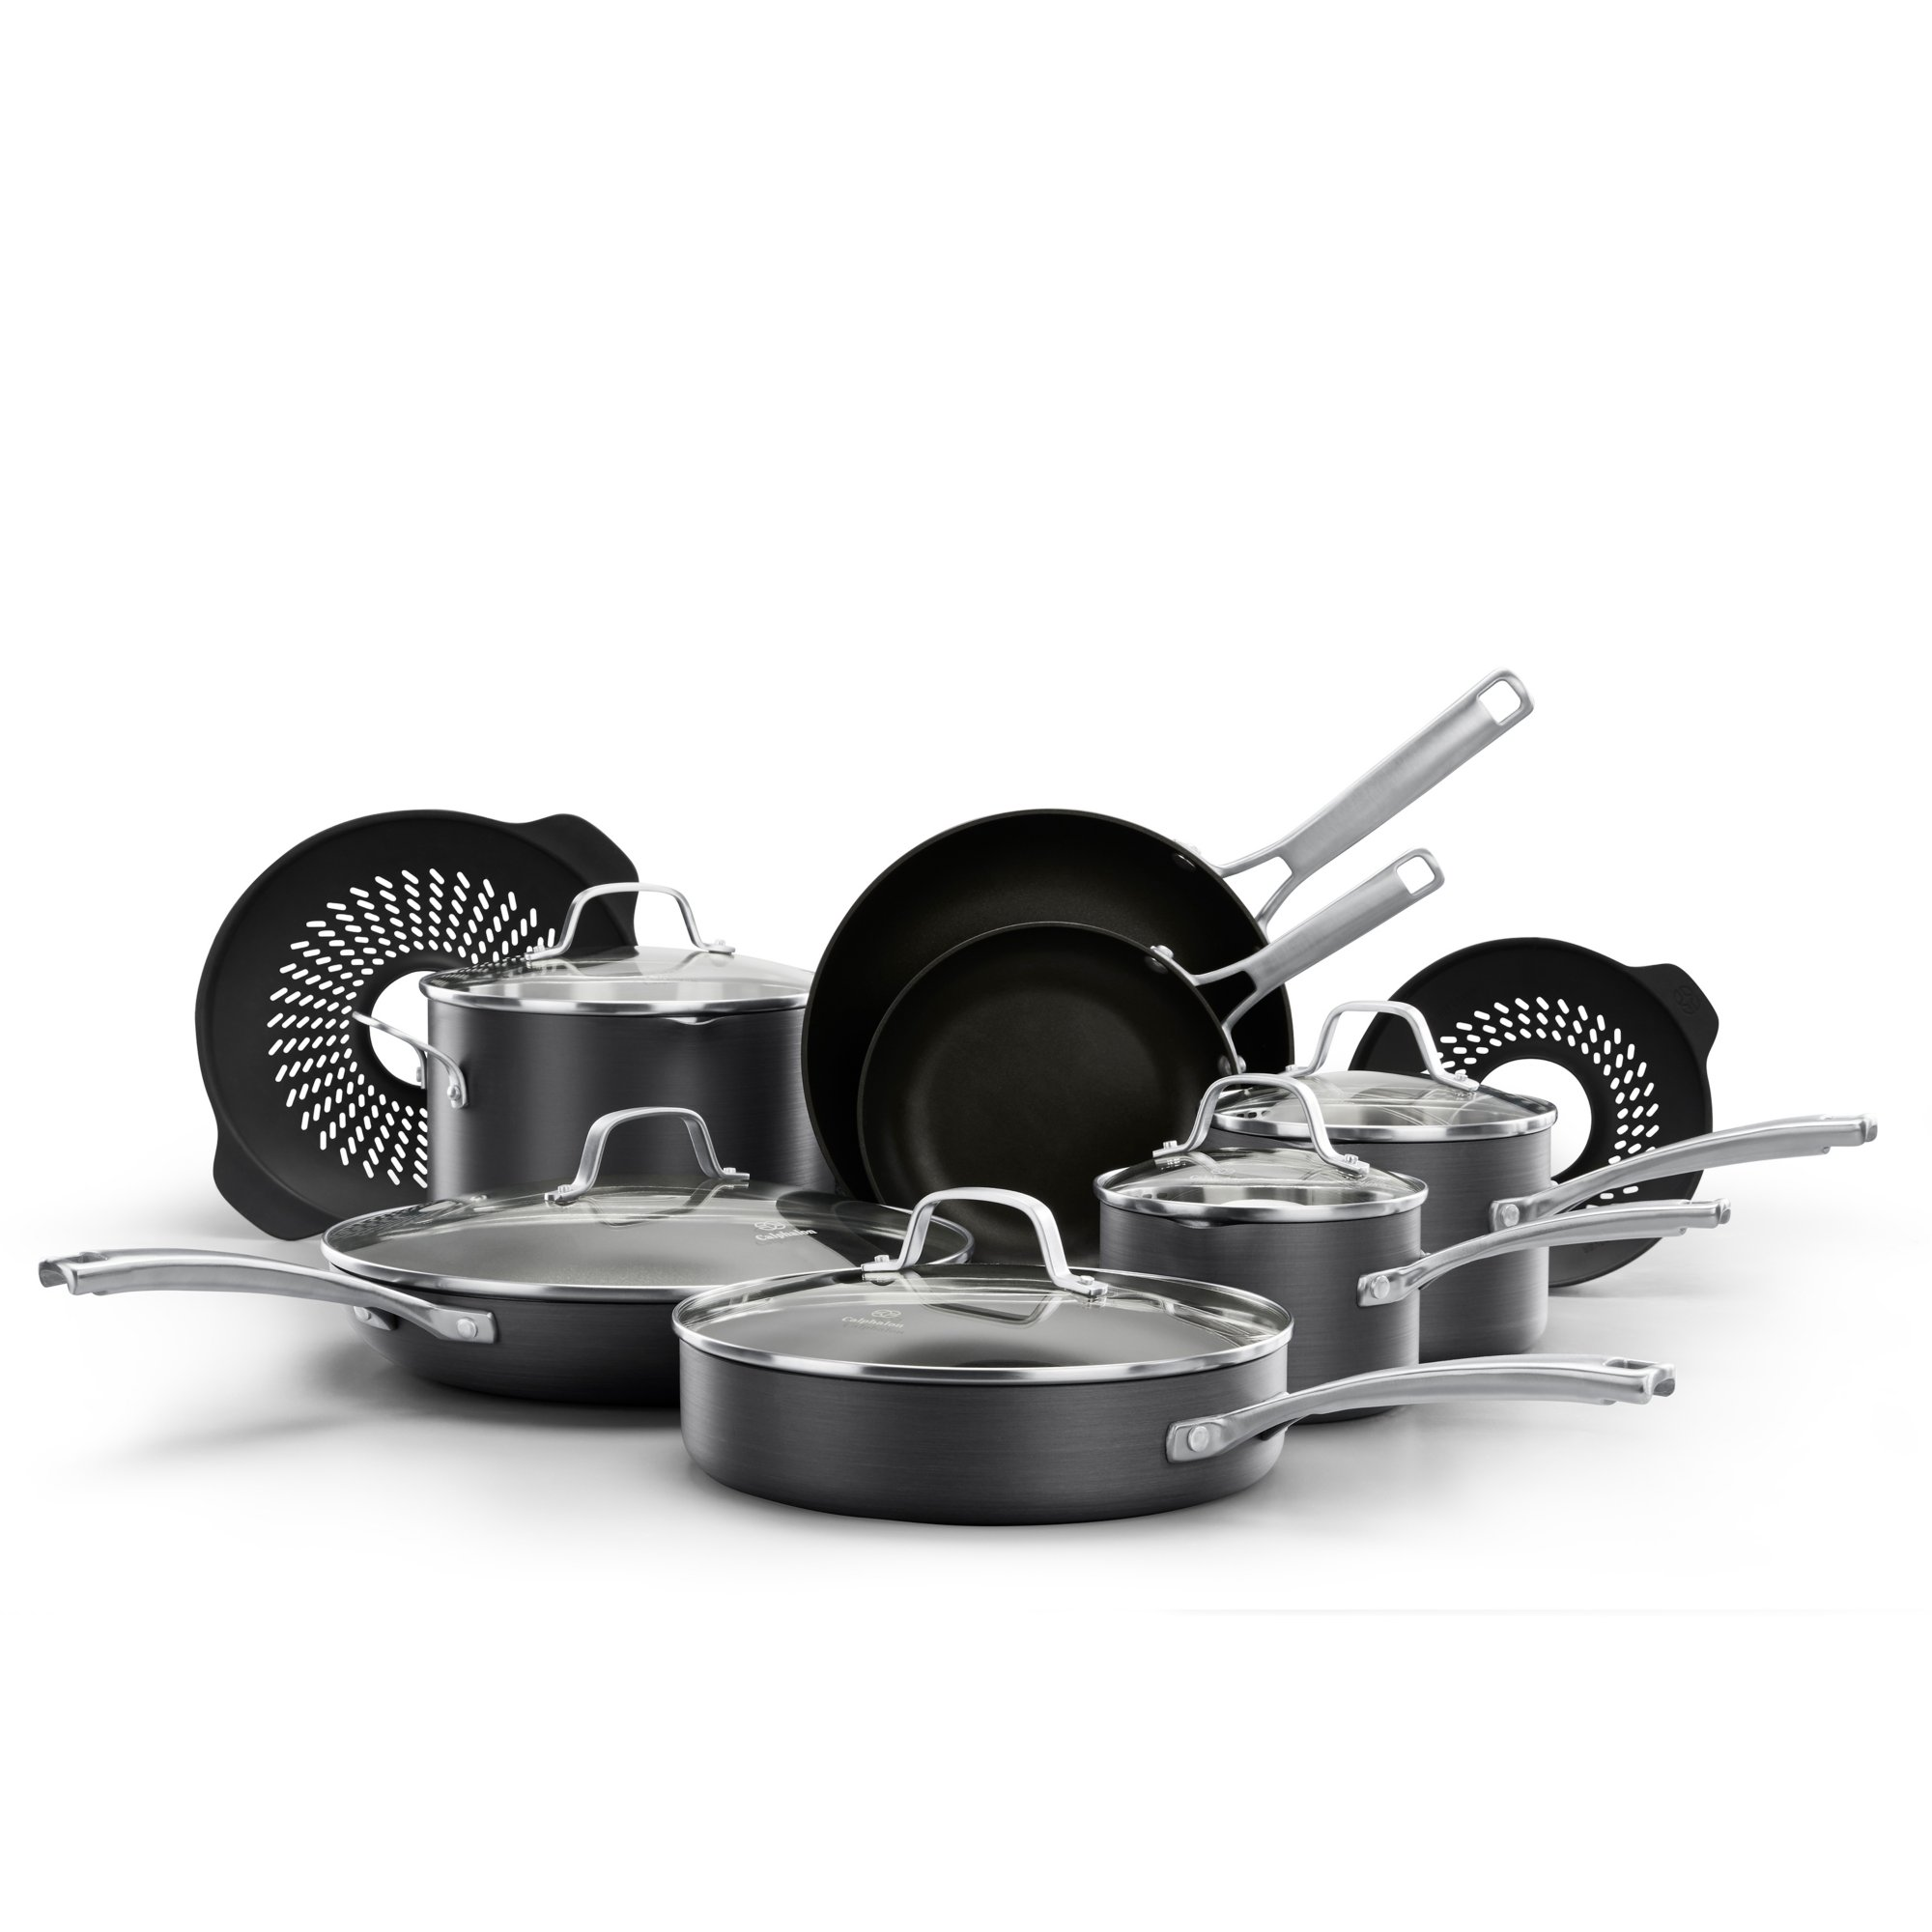 Calphalon Classic™ Nonstick 14-Piece Cookware Set with No-Boil-Over Inserts